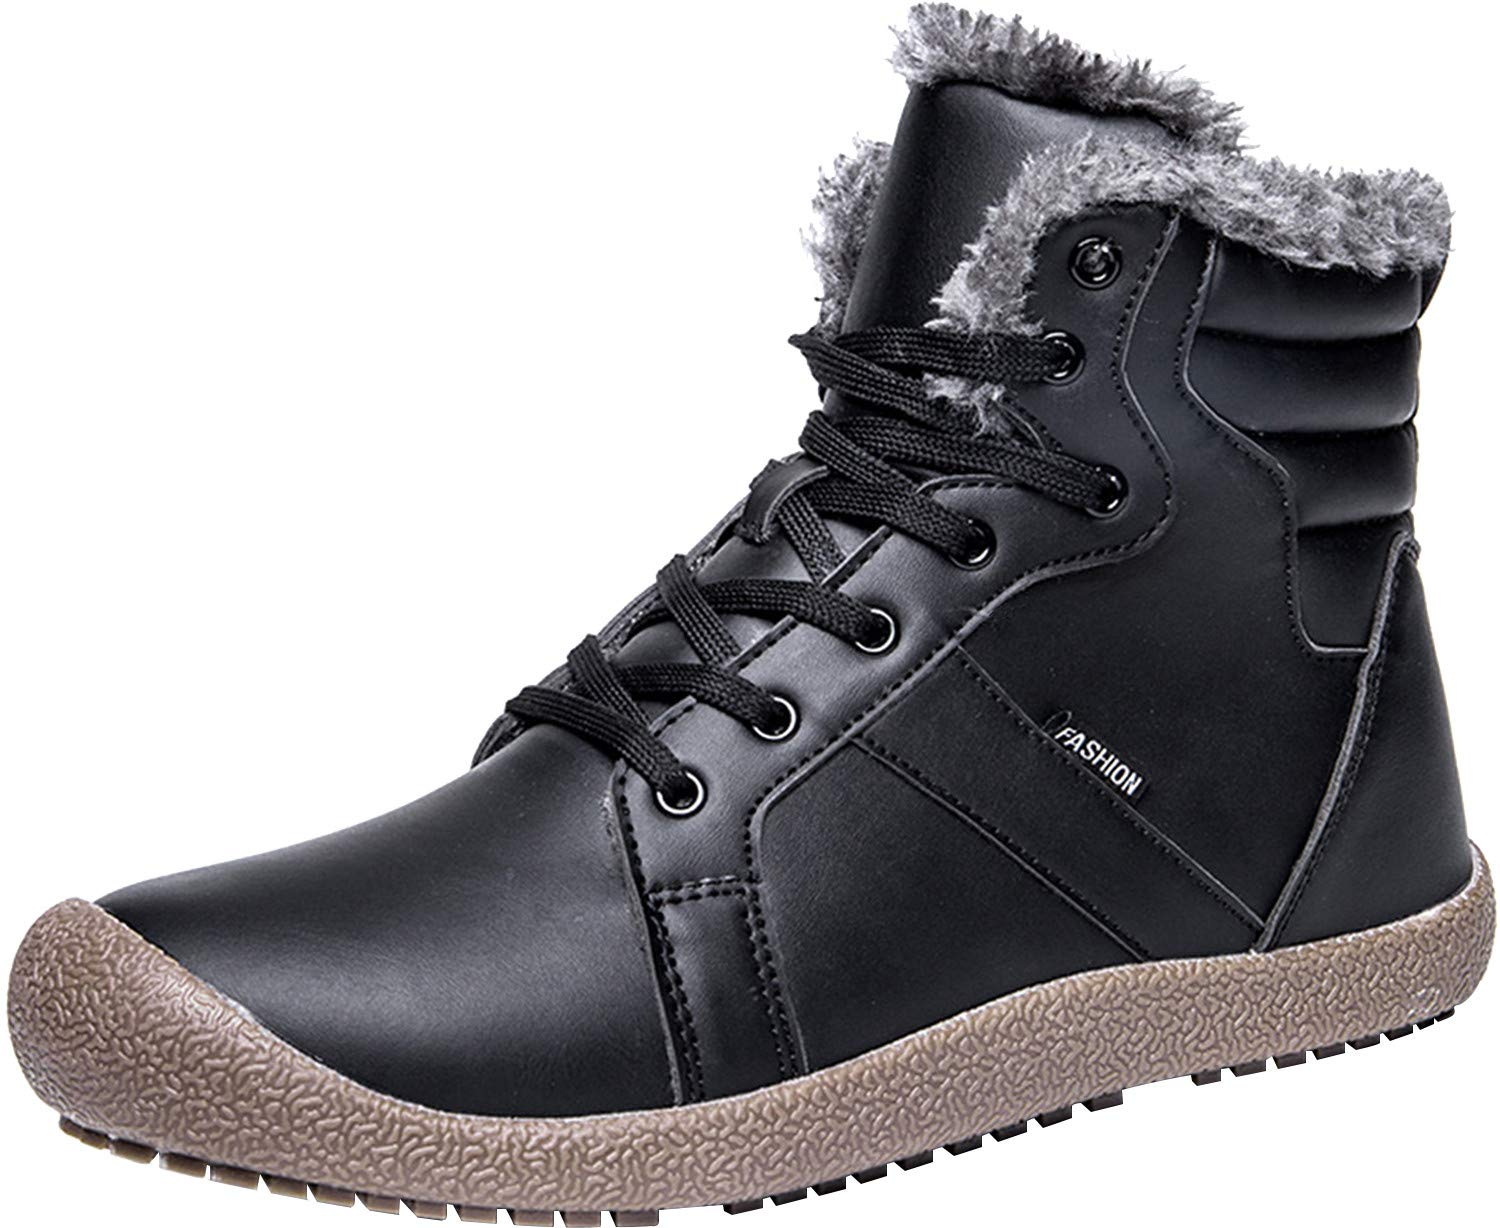 L-RUN Winter Snow Boots for Men Faux Fur Warm Snow Sneaker Outdoor Black 10 M US